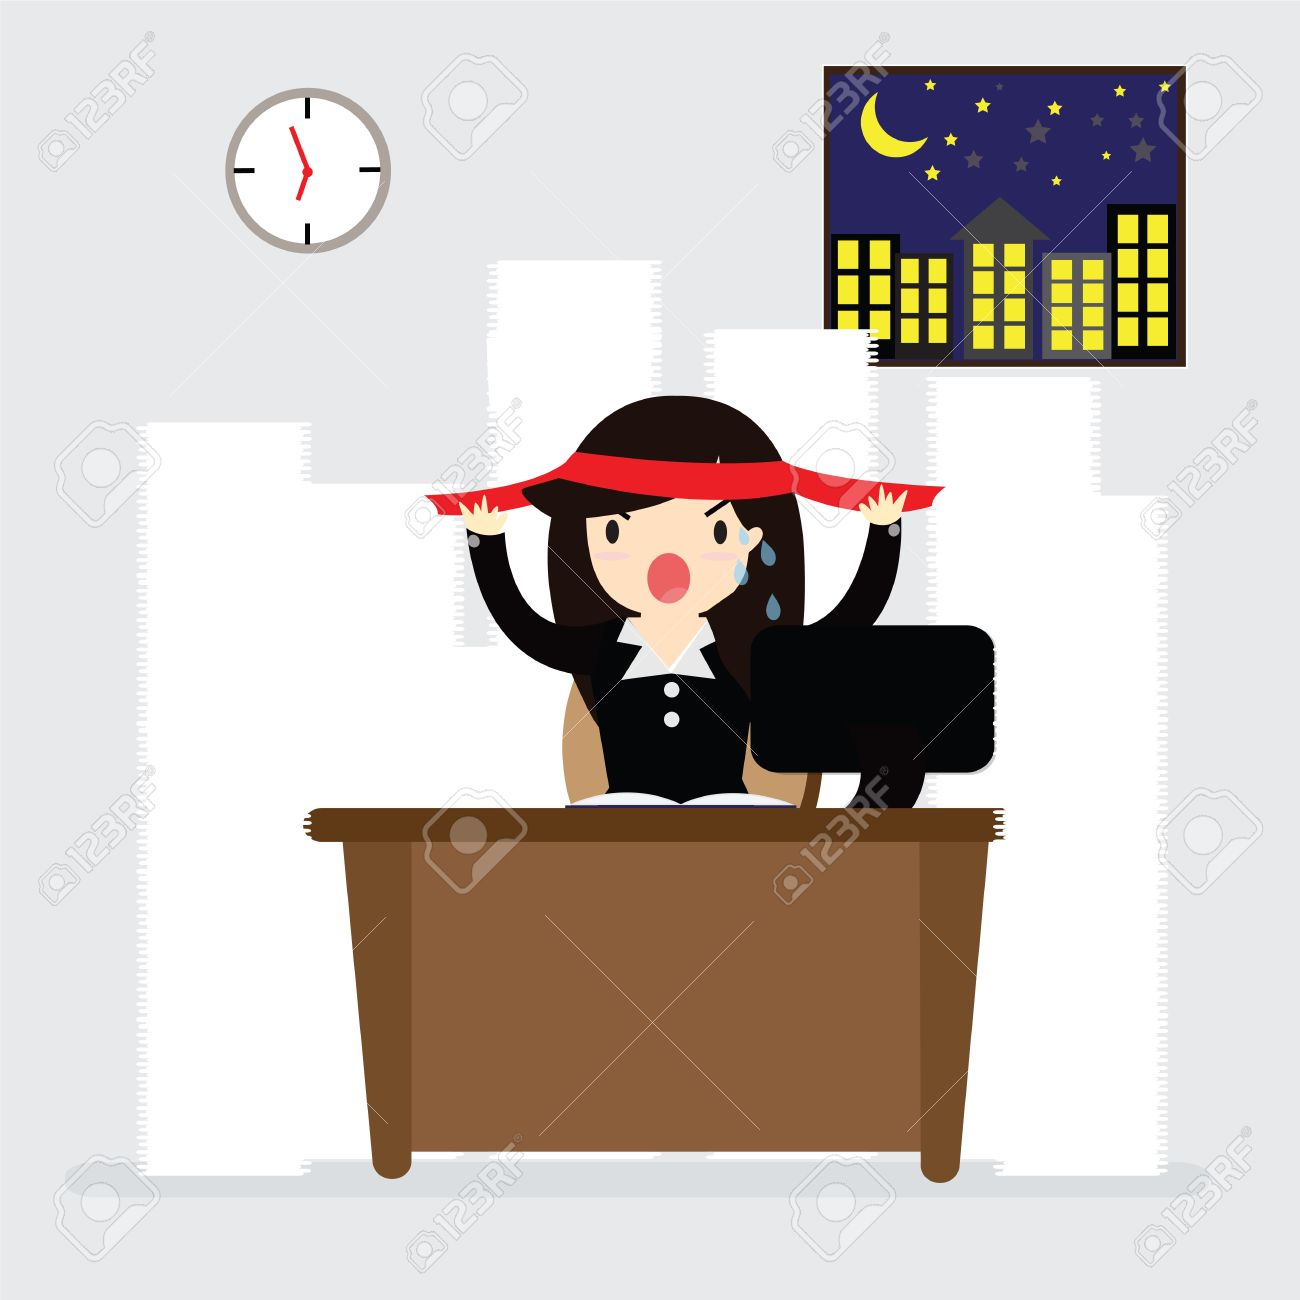 Business Woman Alertness Hard Work Sitting On Desk In Night At.